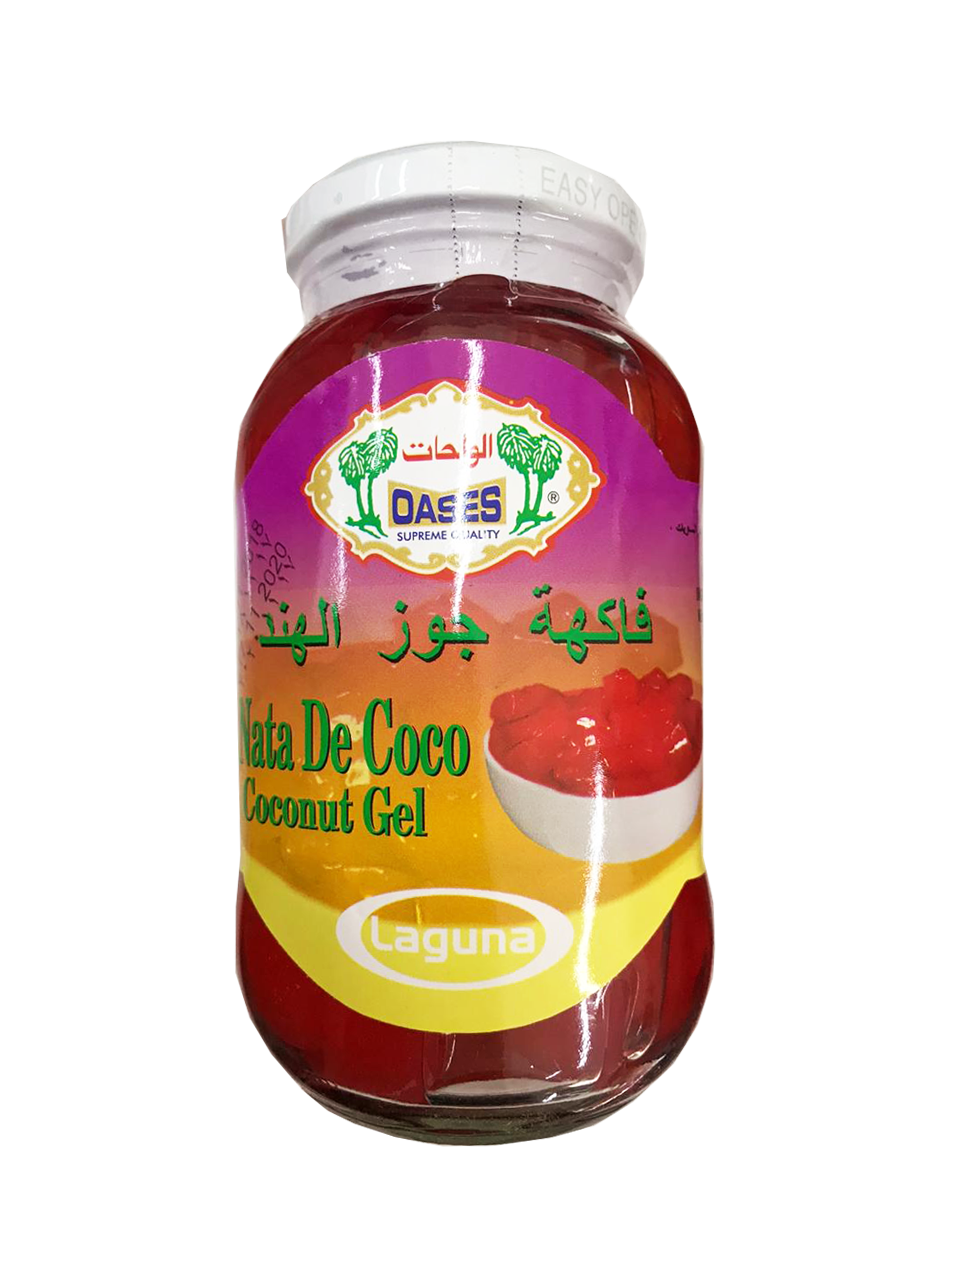 Oases Nata De Coco Coconut Gel - Red